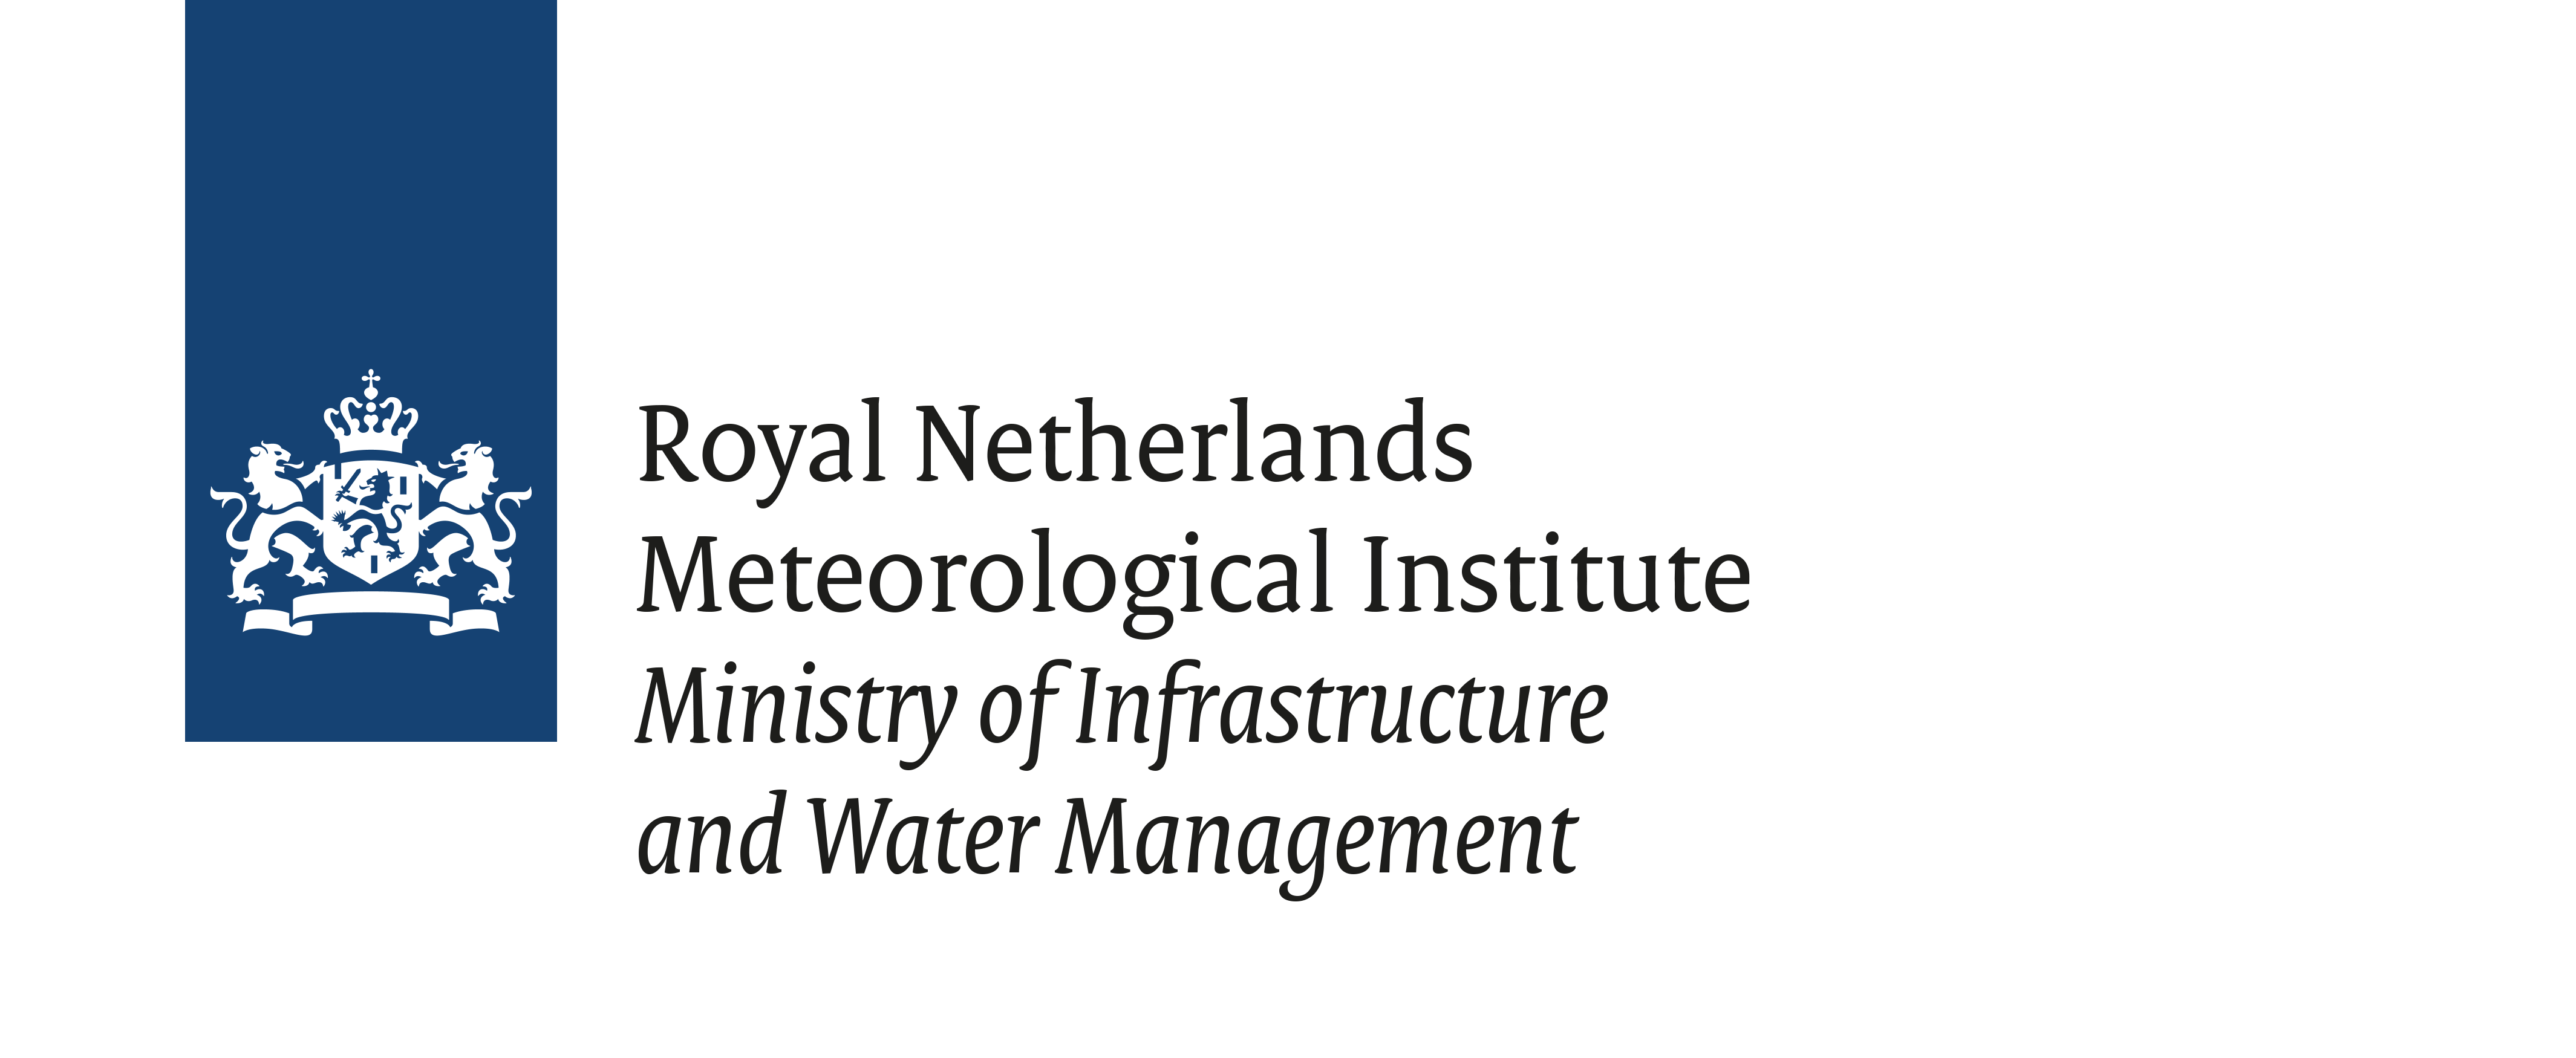 KNMI Royal Netherlands Meteorological Institute